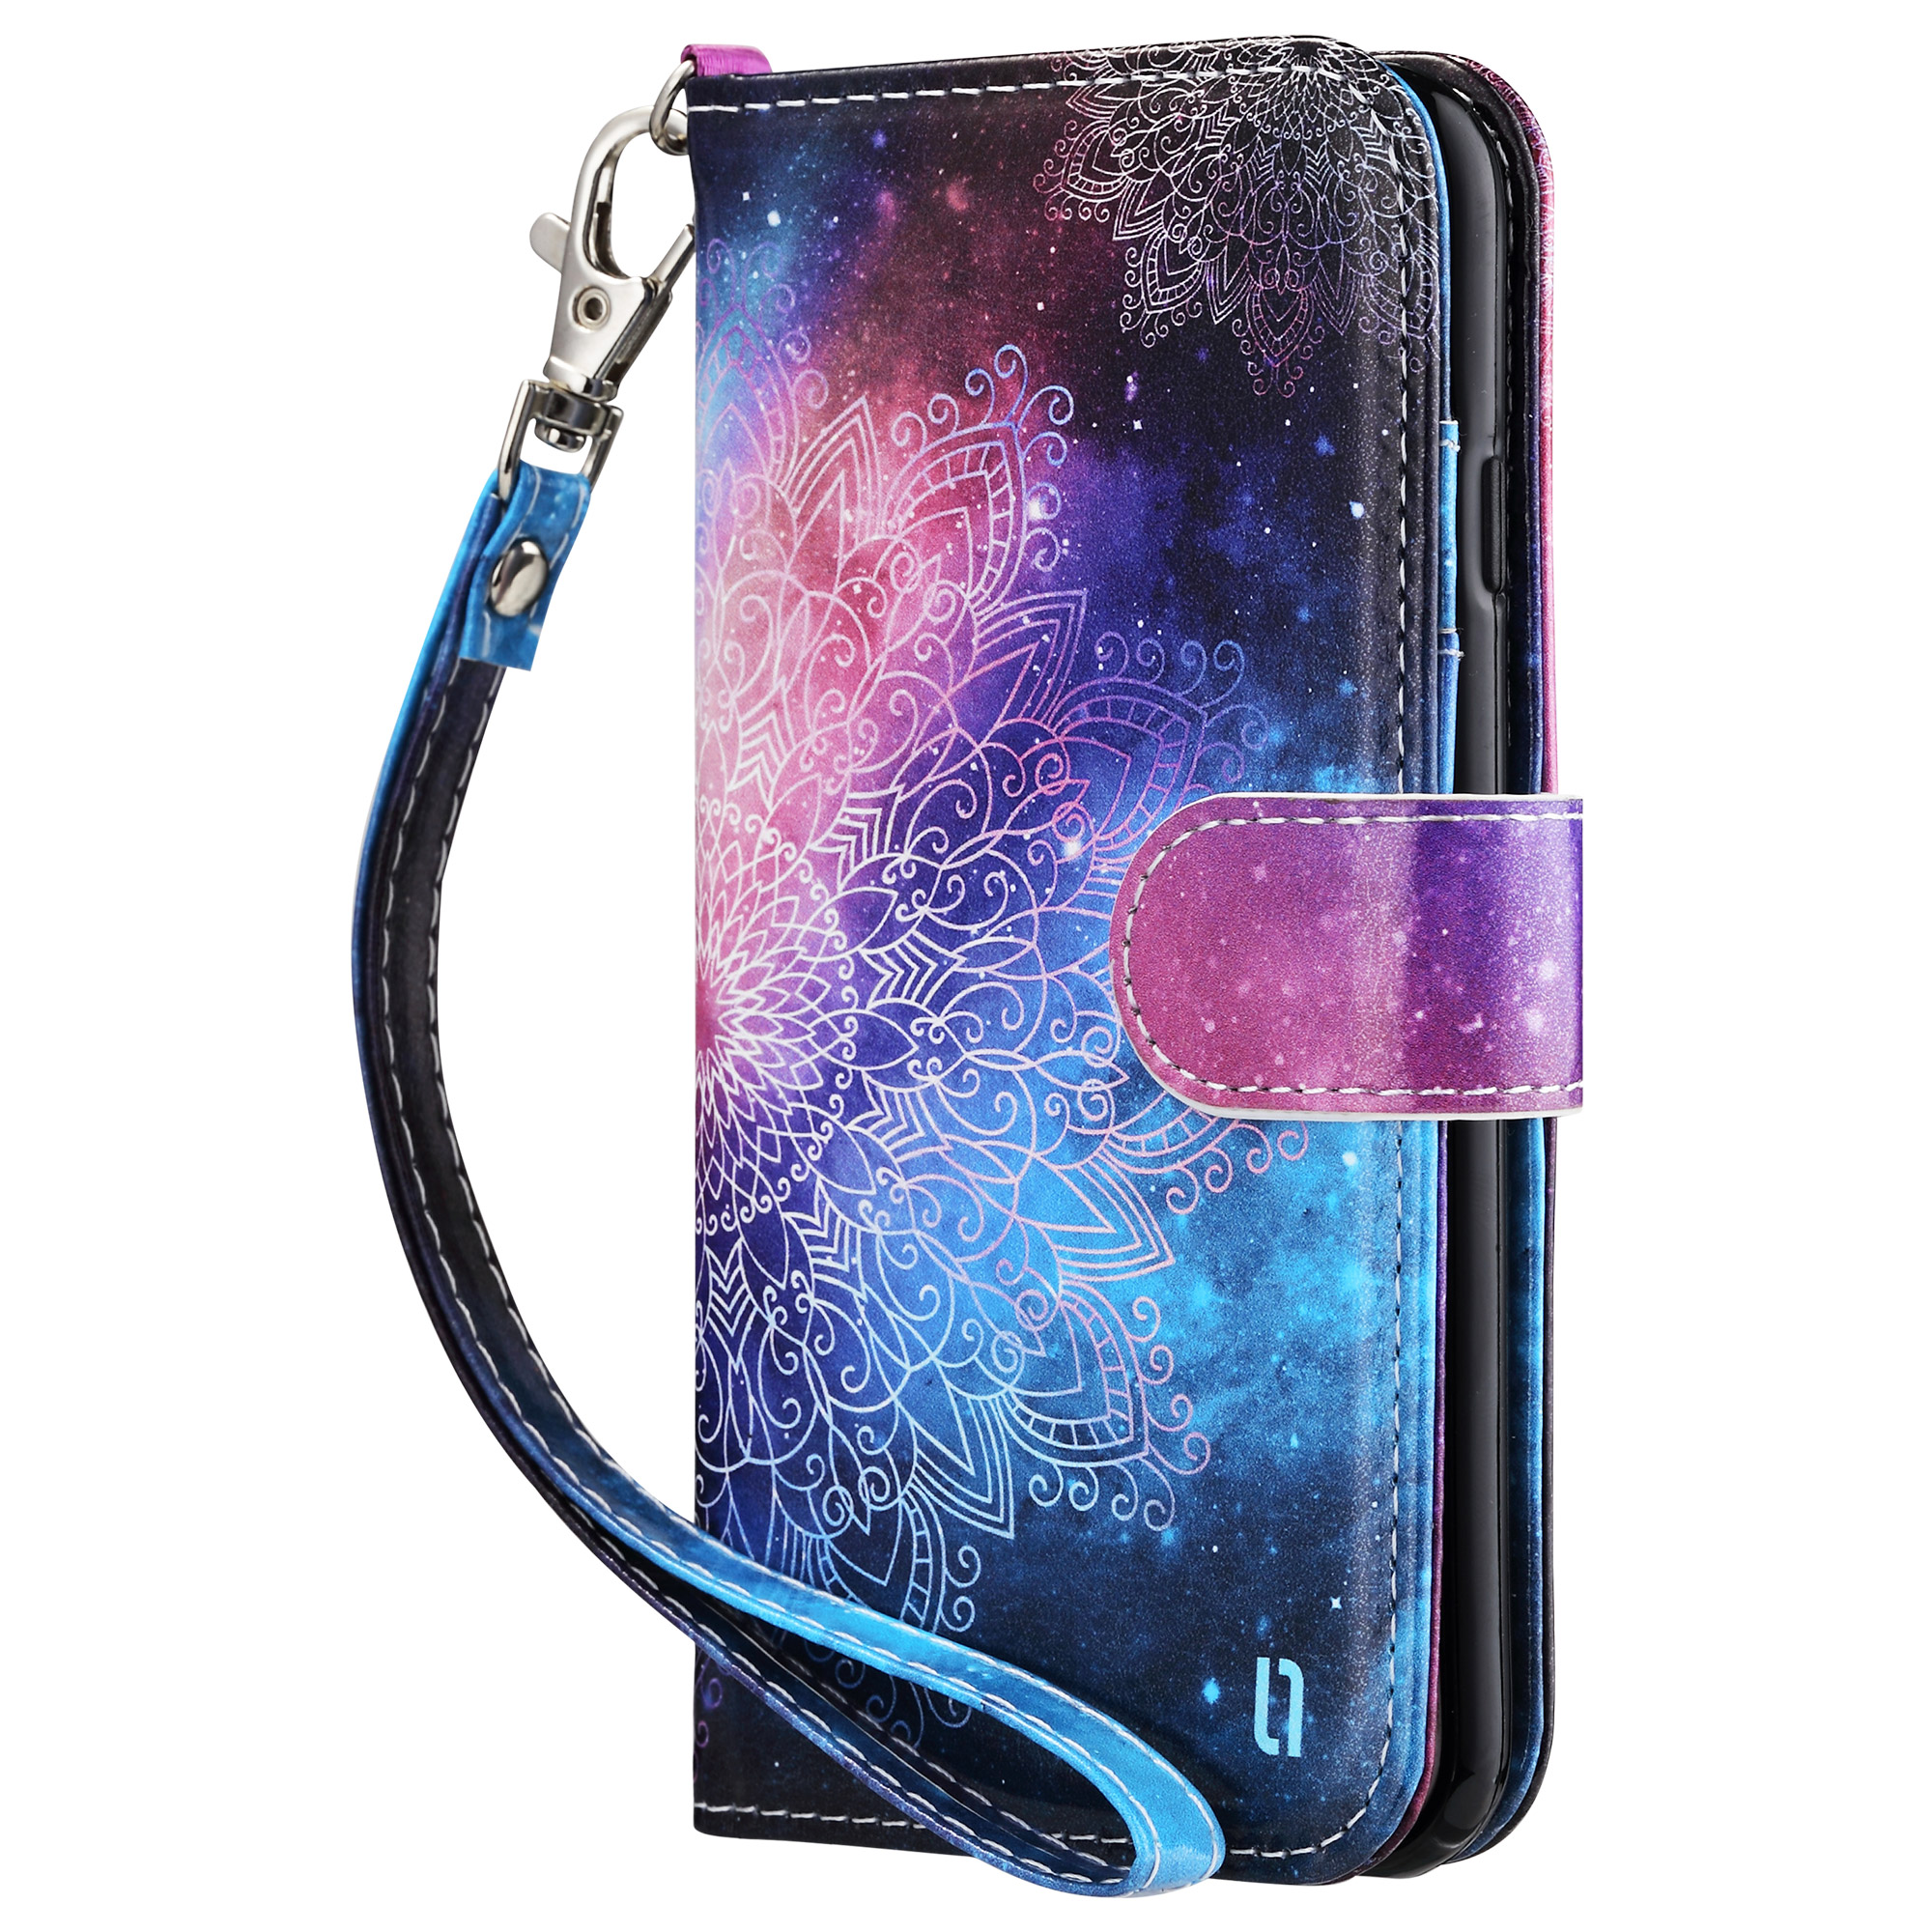 ULAK Wallet Phone Case for iPhone SE 2020, iPhone 8 ...